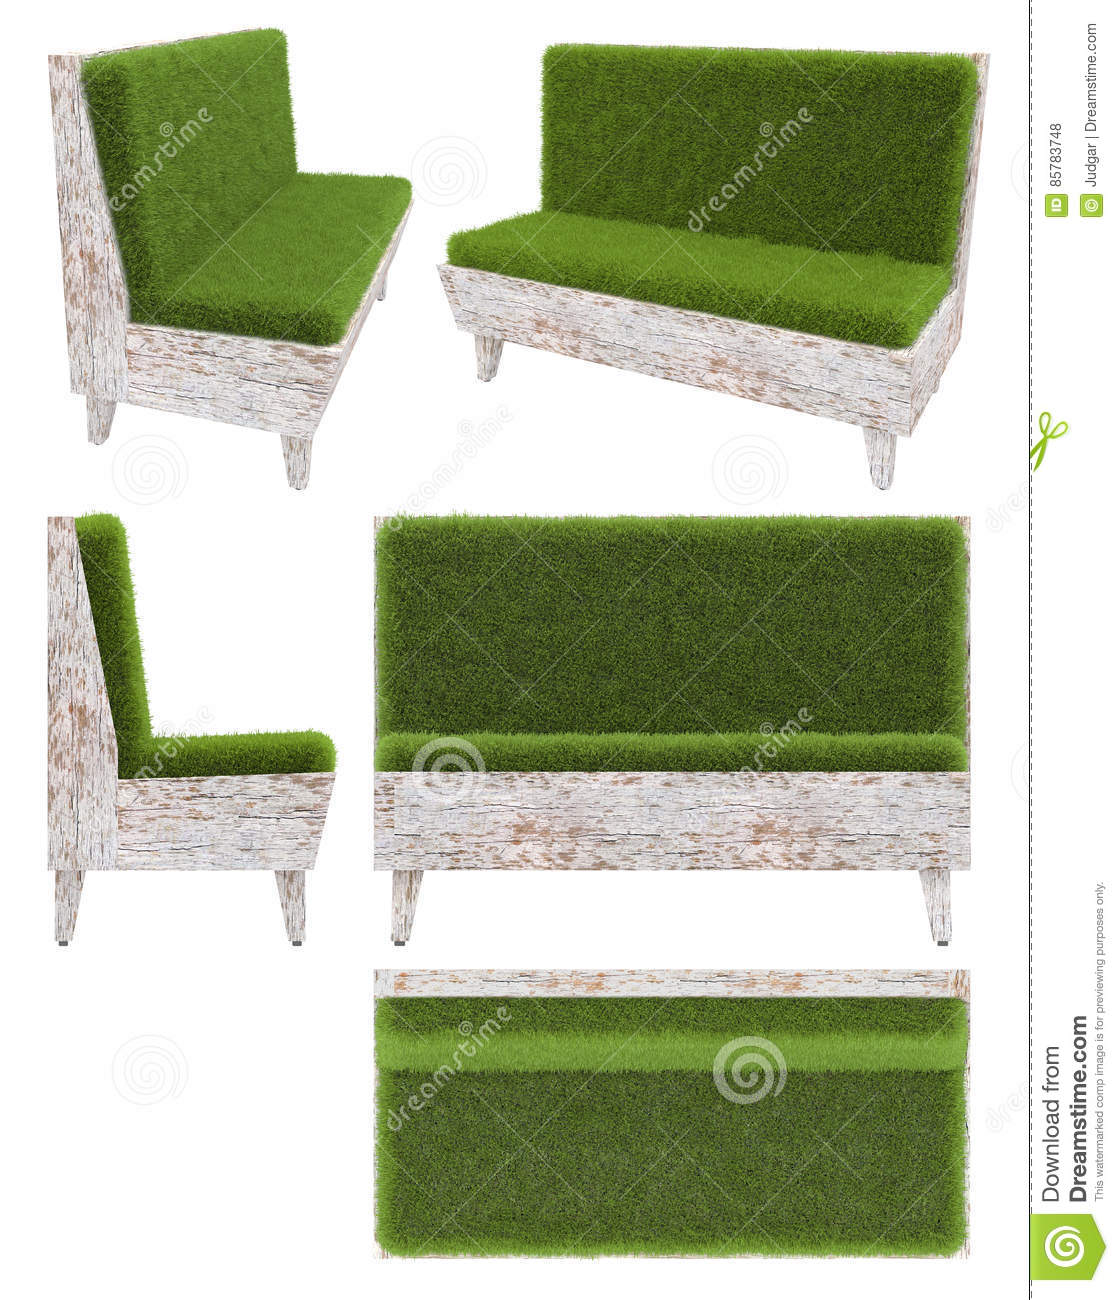 royalty free vector download sofa in old wood with grass cover garden furniture top view - Garden Furniture Top View